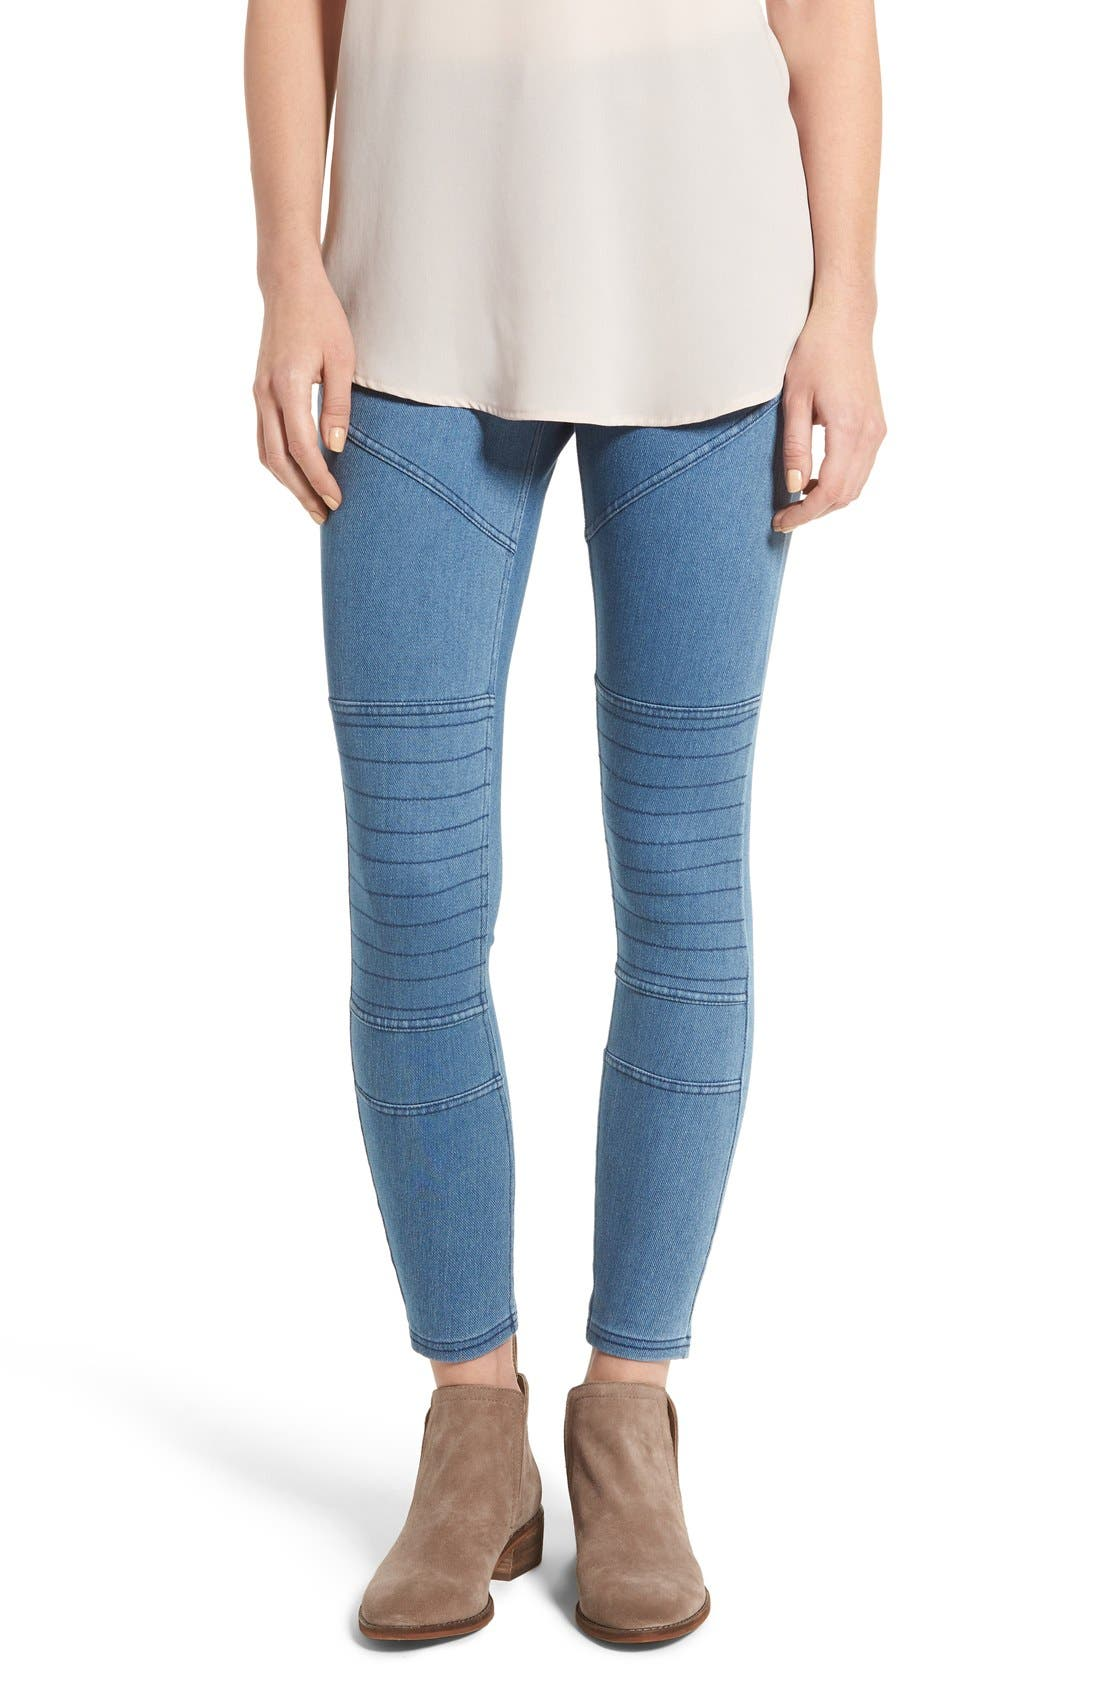 Hue Moto Denim Leggings